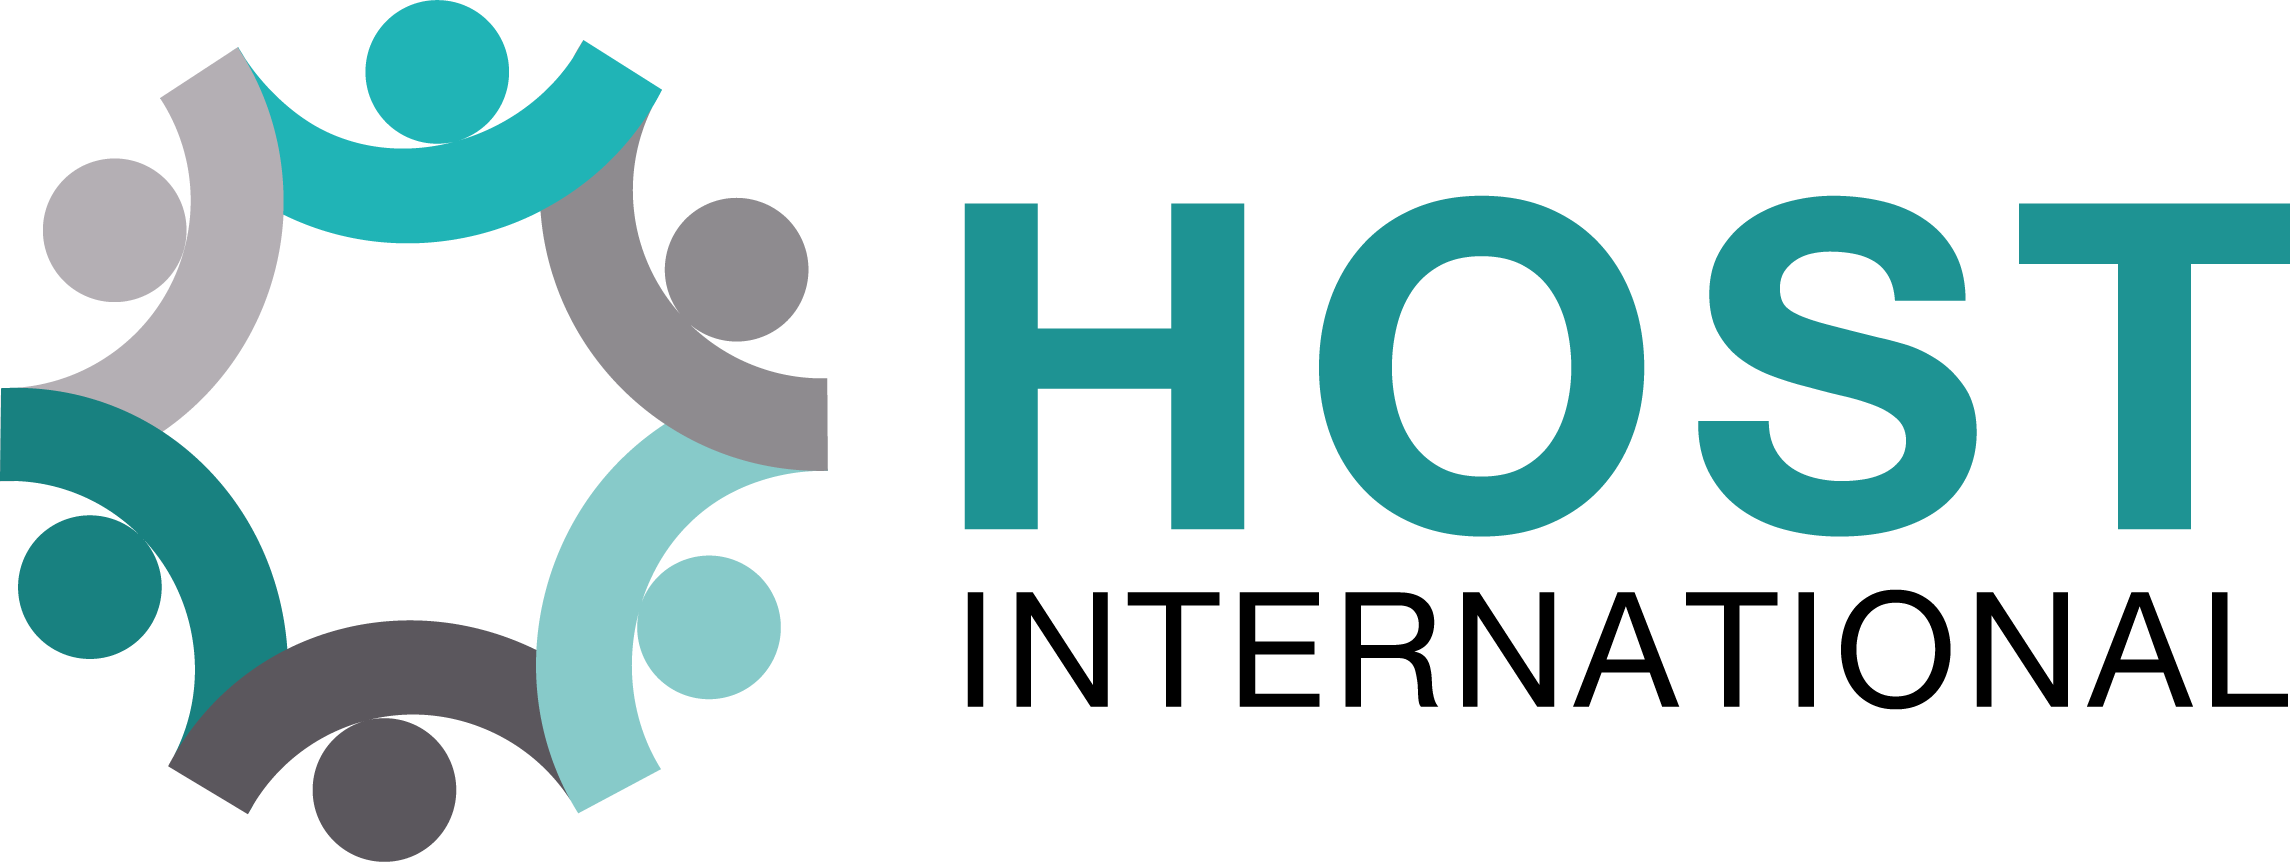 HOST-INTERNATIONAL-no-byline_company_logo.png